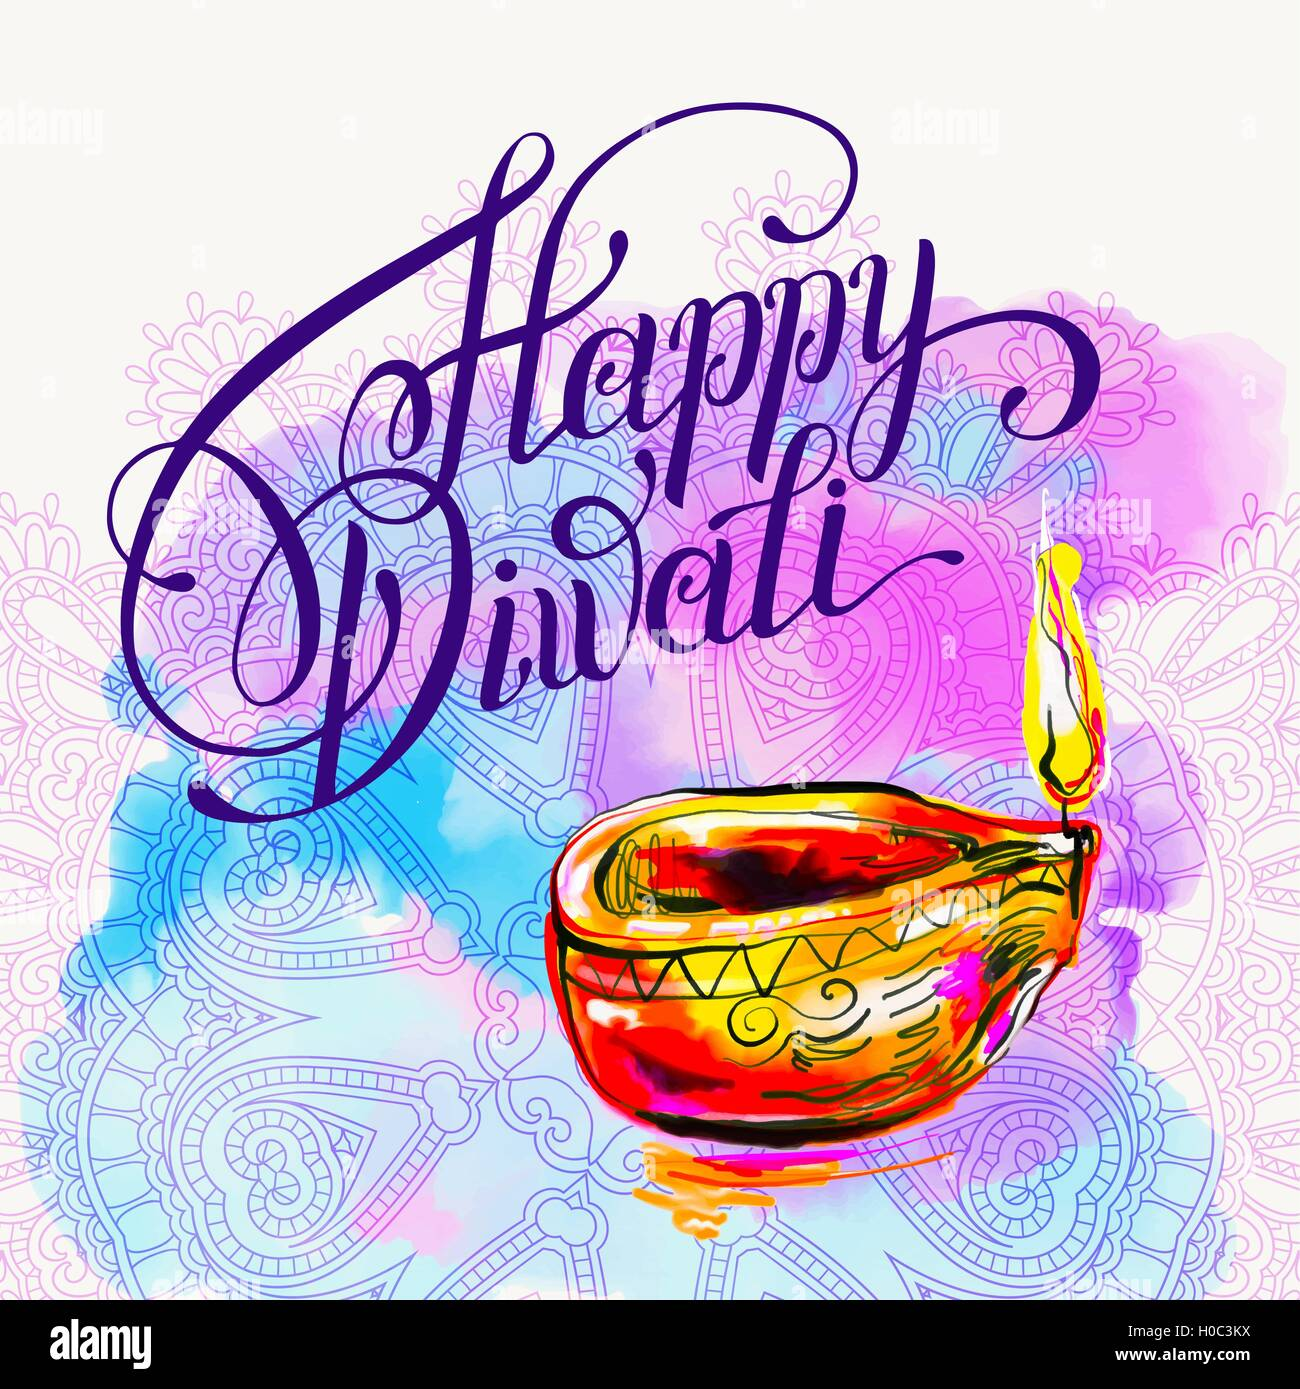 Happy diwali watercolor greeting card to indian fire festival wi happy diwali watercolor greeting card to indian fire festival wi m4hsunfo